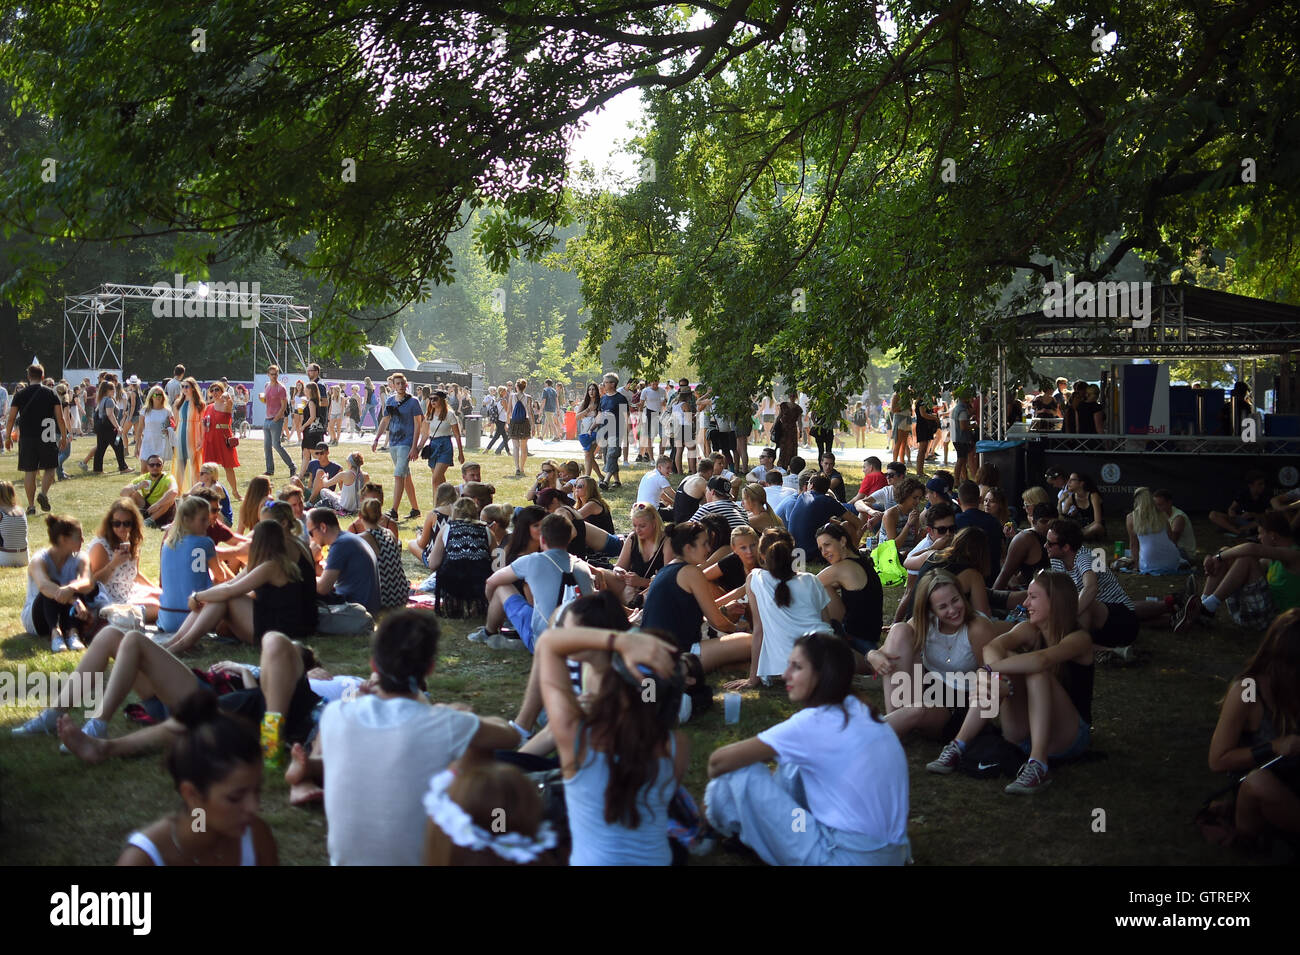 Festival-goers relax in the shade at the Lollapalooza music festival in Berlin, Germany, 10 September 2016. - Stock Image